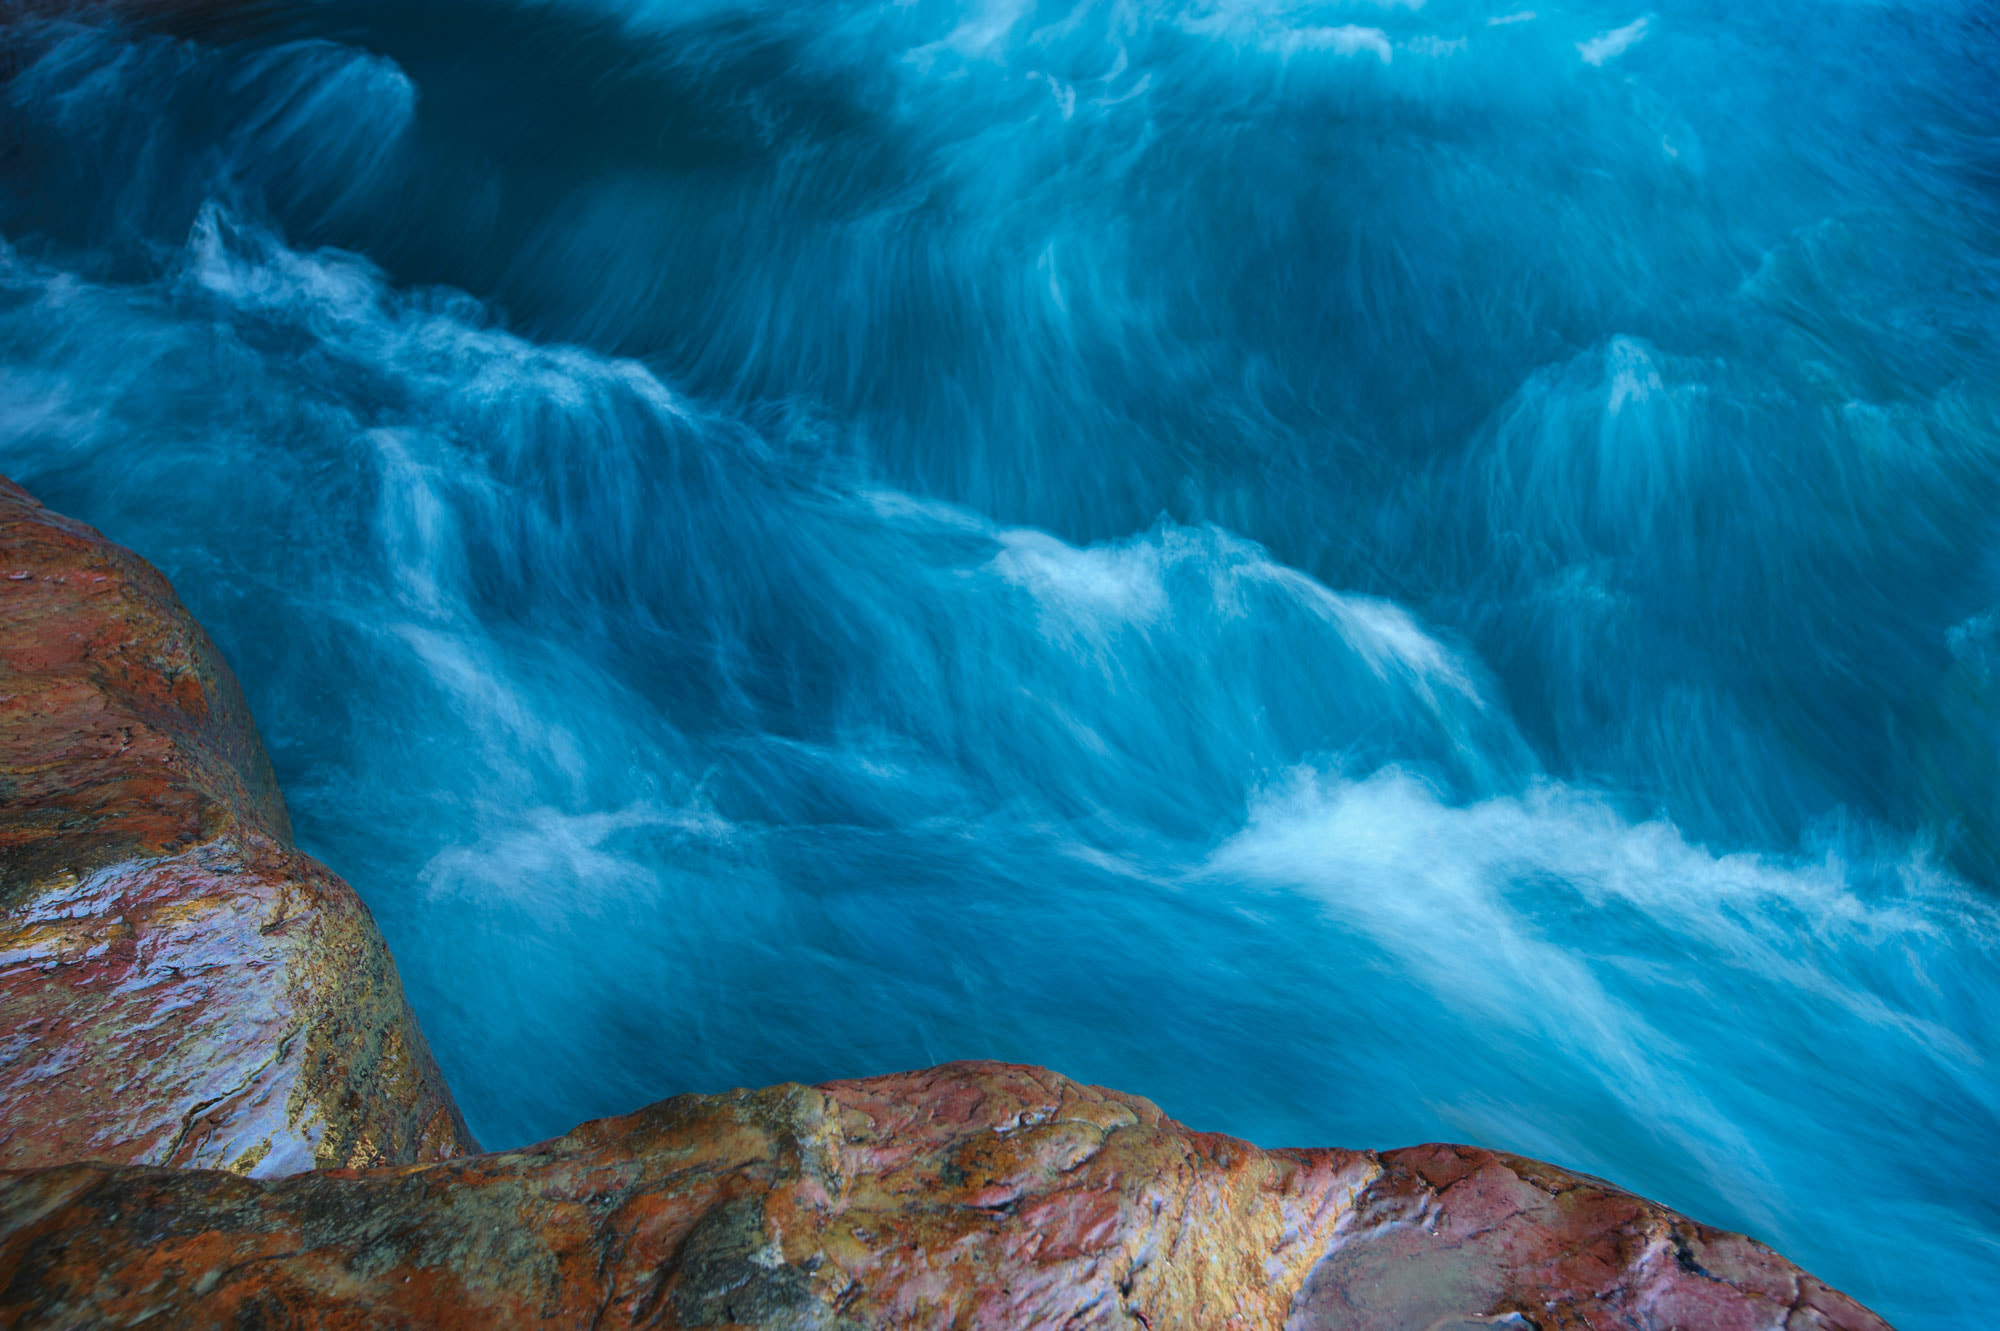 Photograph Water and Rocks by Jeanine Leech on 500px